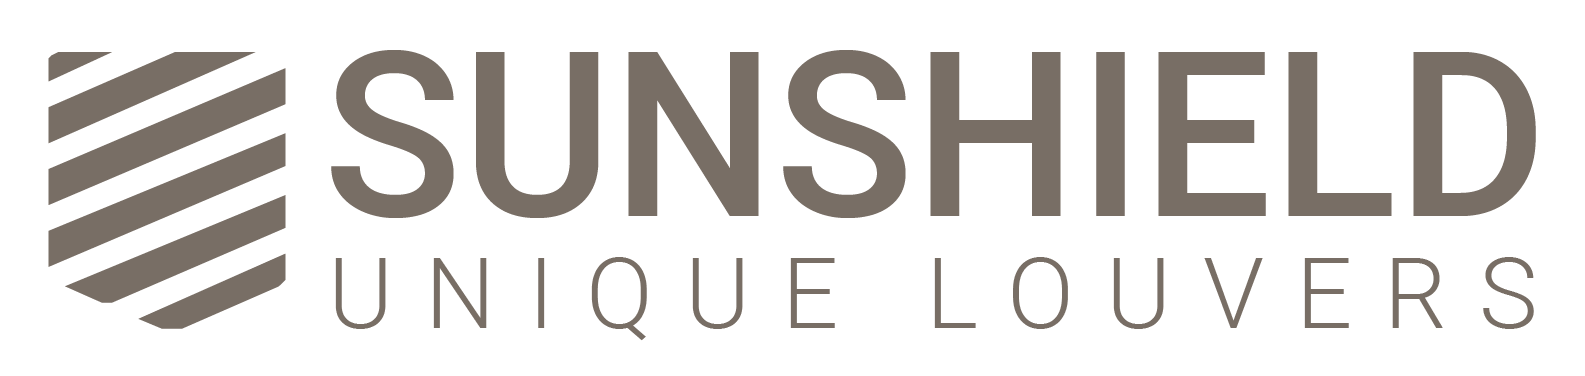 Sunshield logo, brown on white background